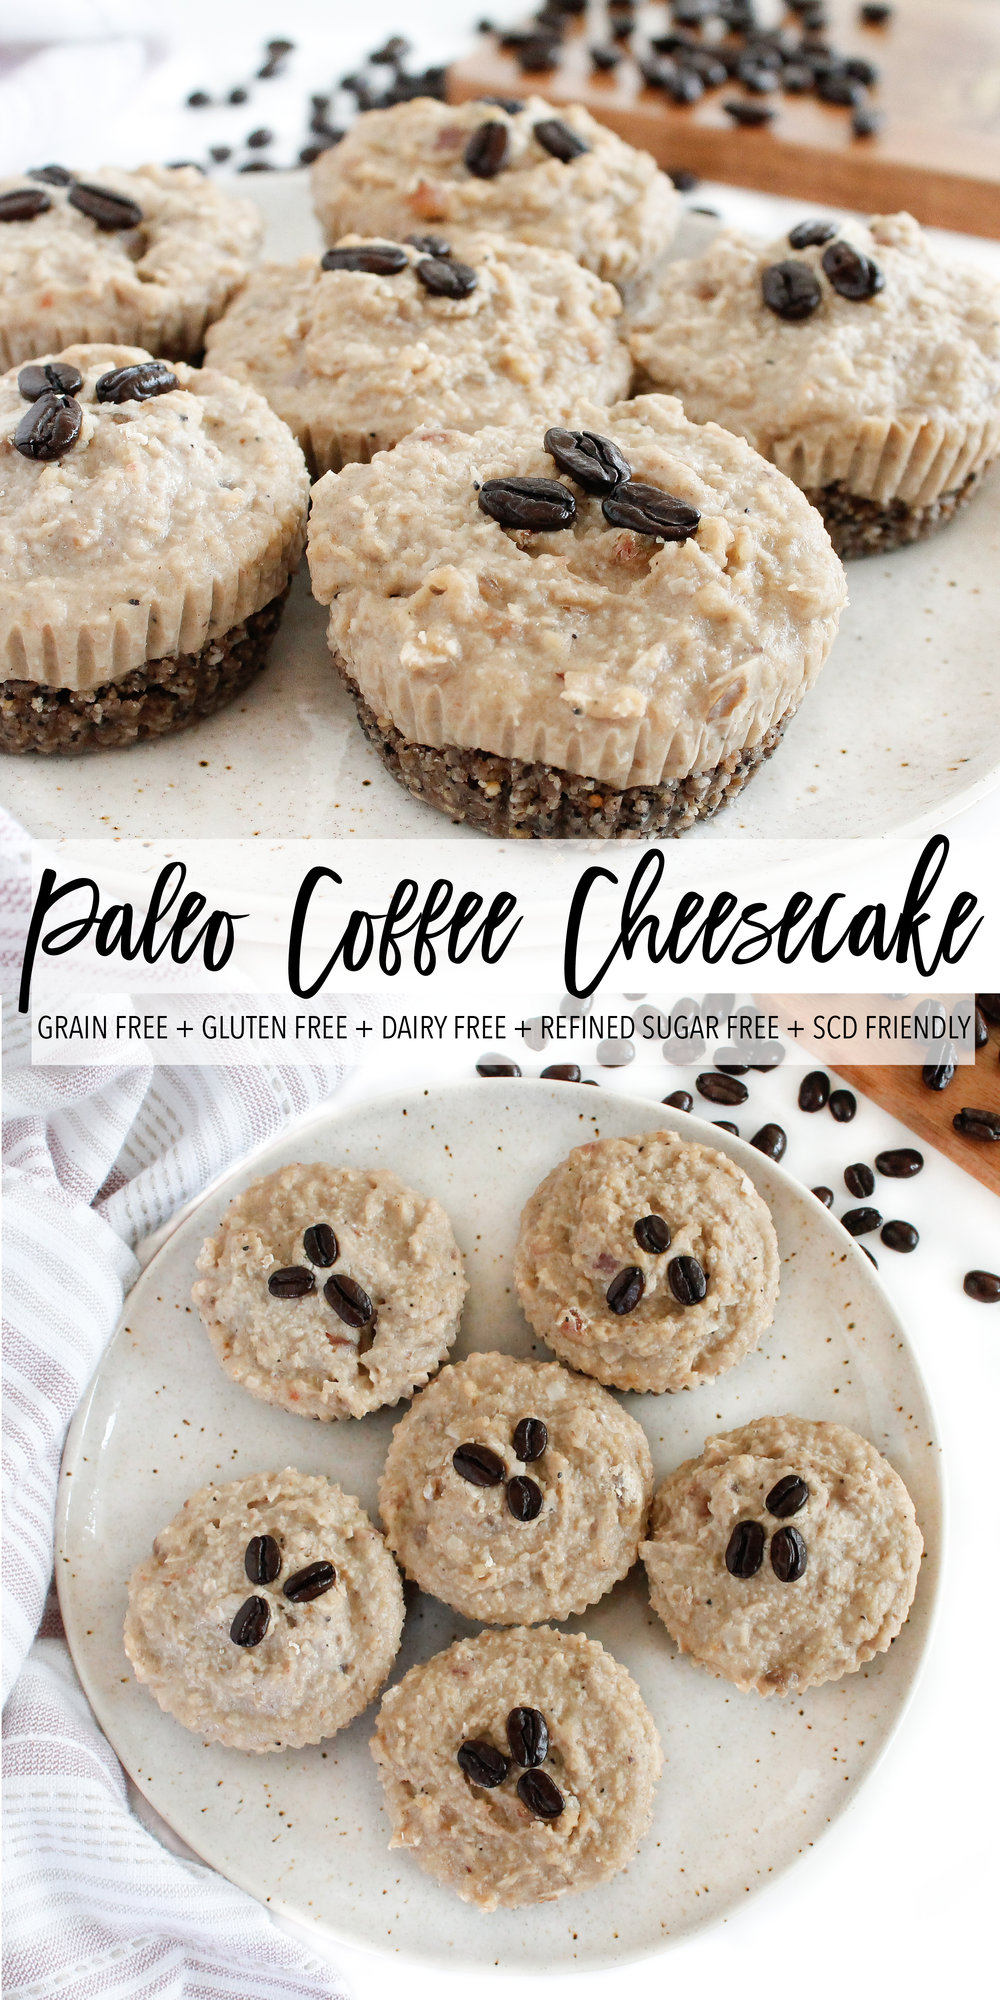 PALEO VEGAN COFFEE CHEESECAKE